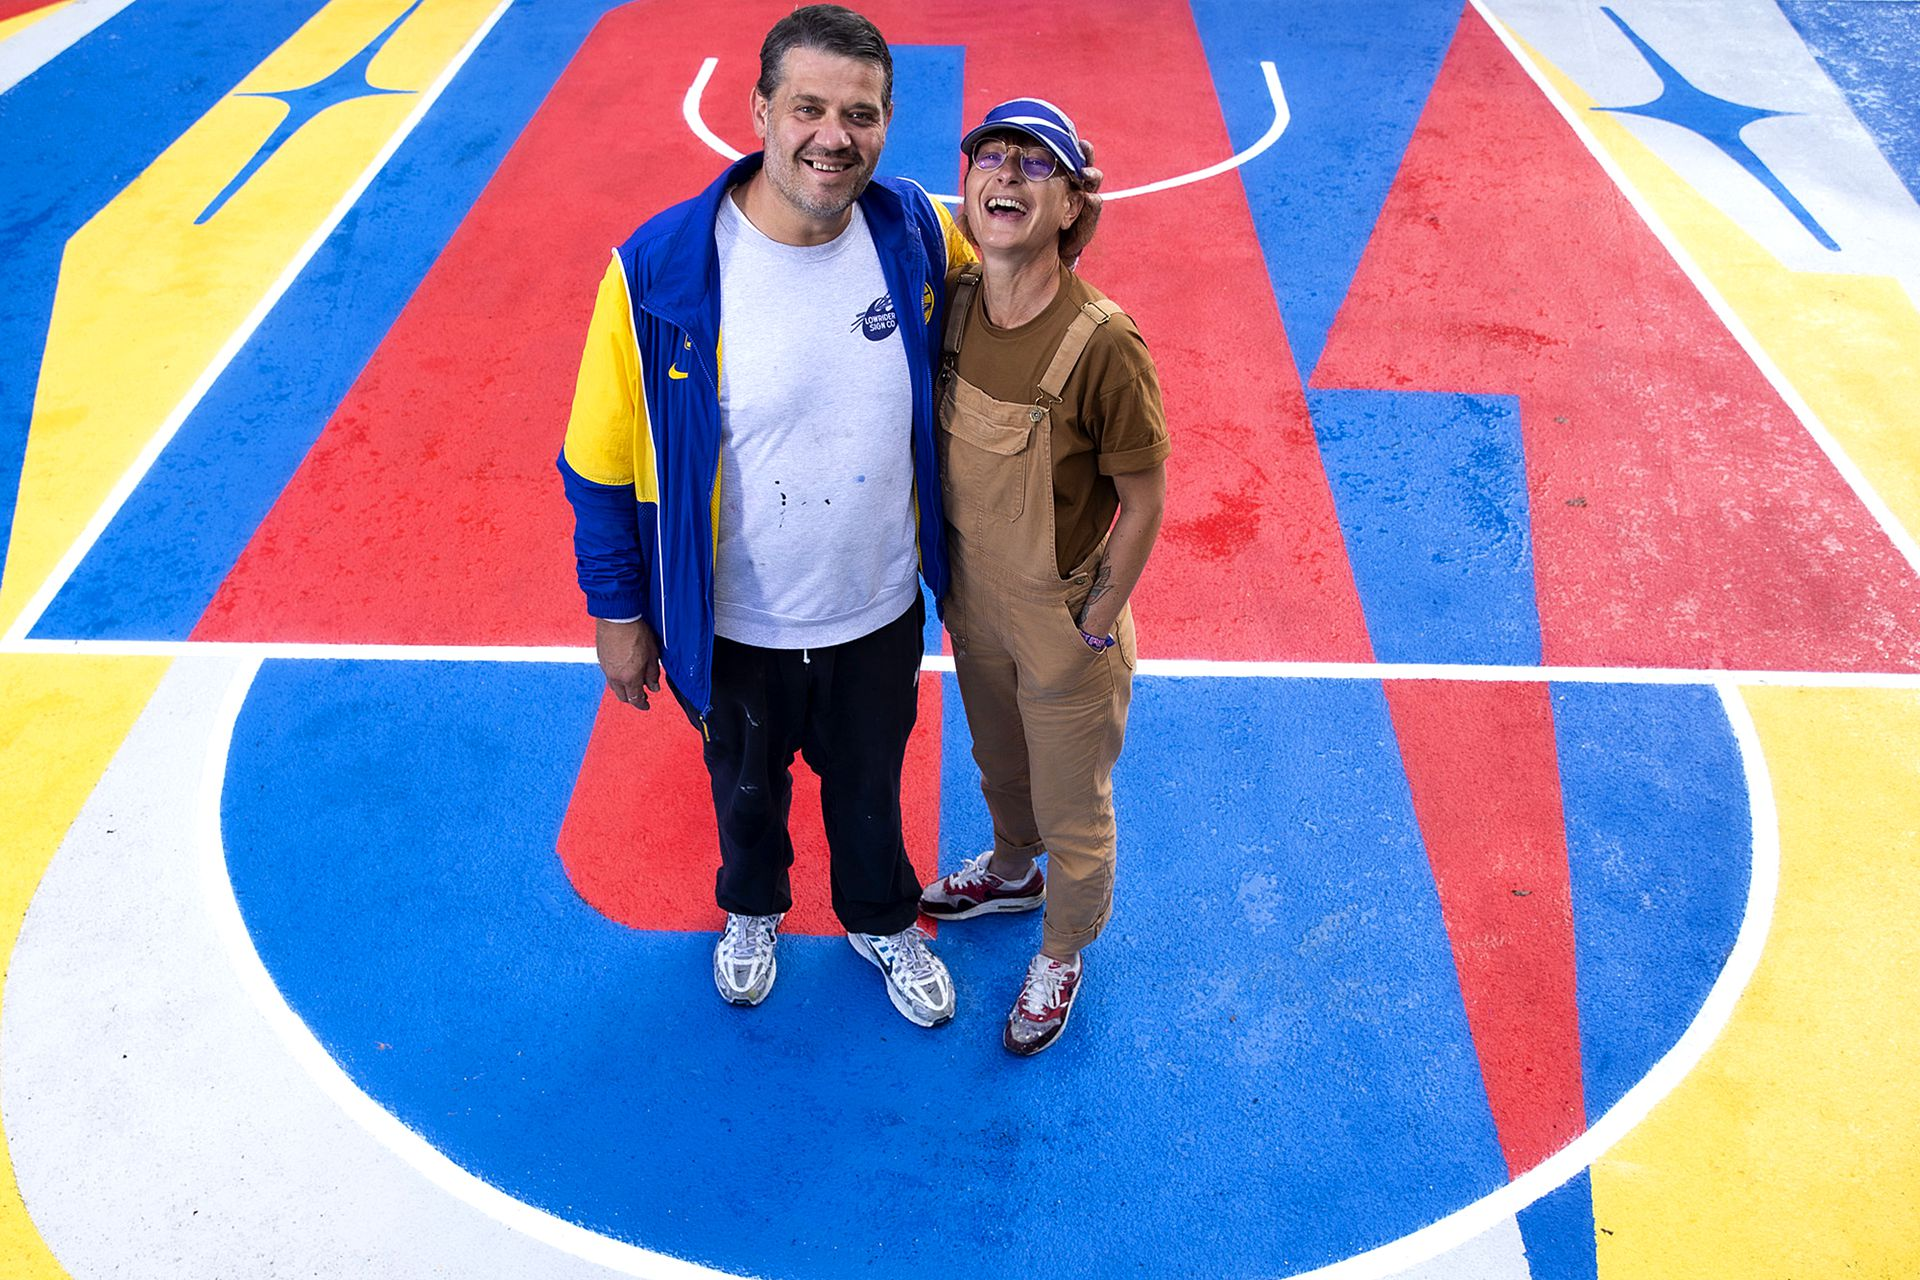 Serge and valerie LOWRIDER at their artwork in Lausanne, Switzerland on August 8, 2021